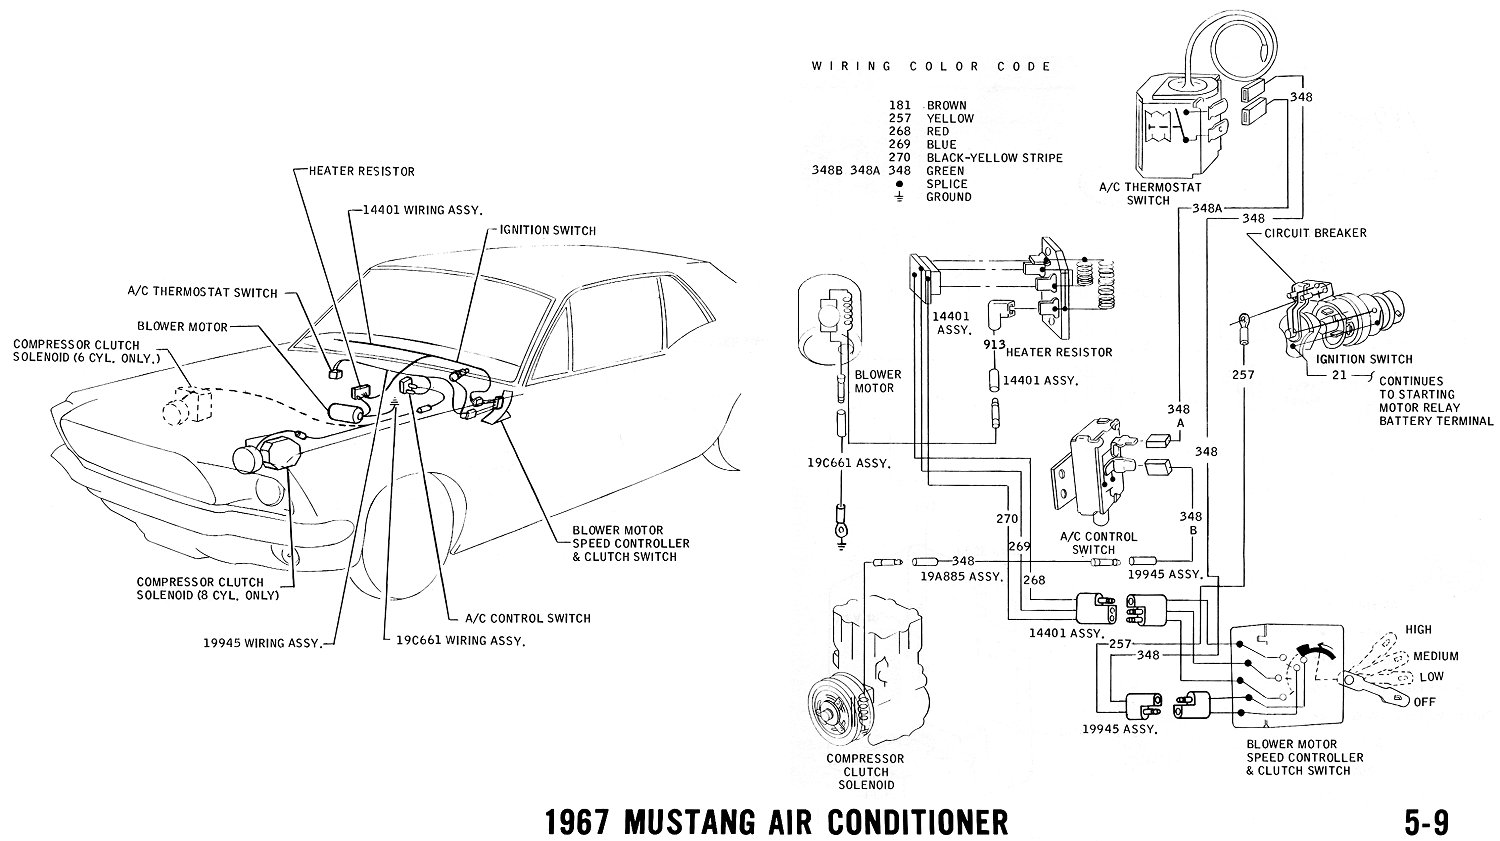 Wiring Diagram Sle Ideas Cool Mustang